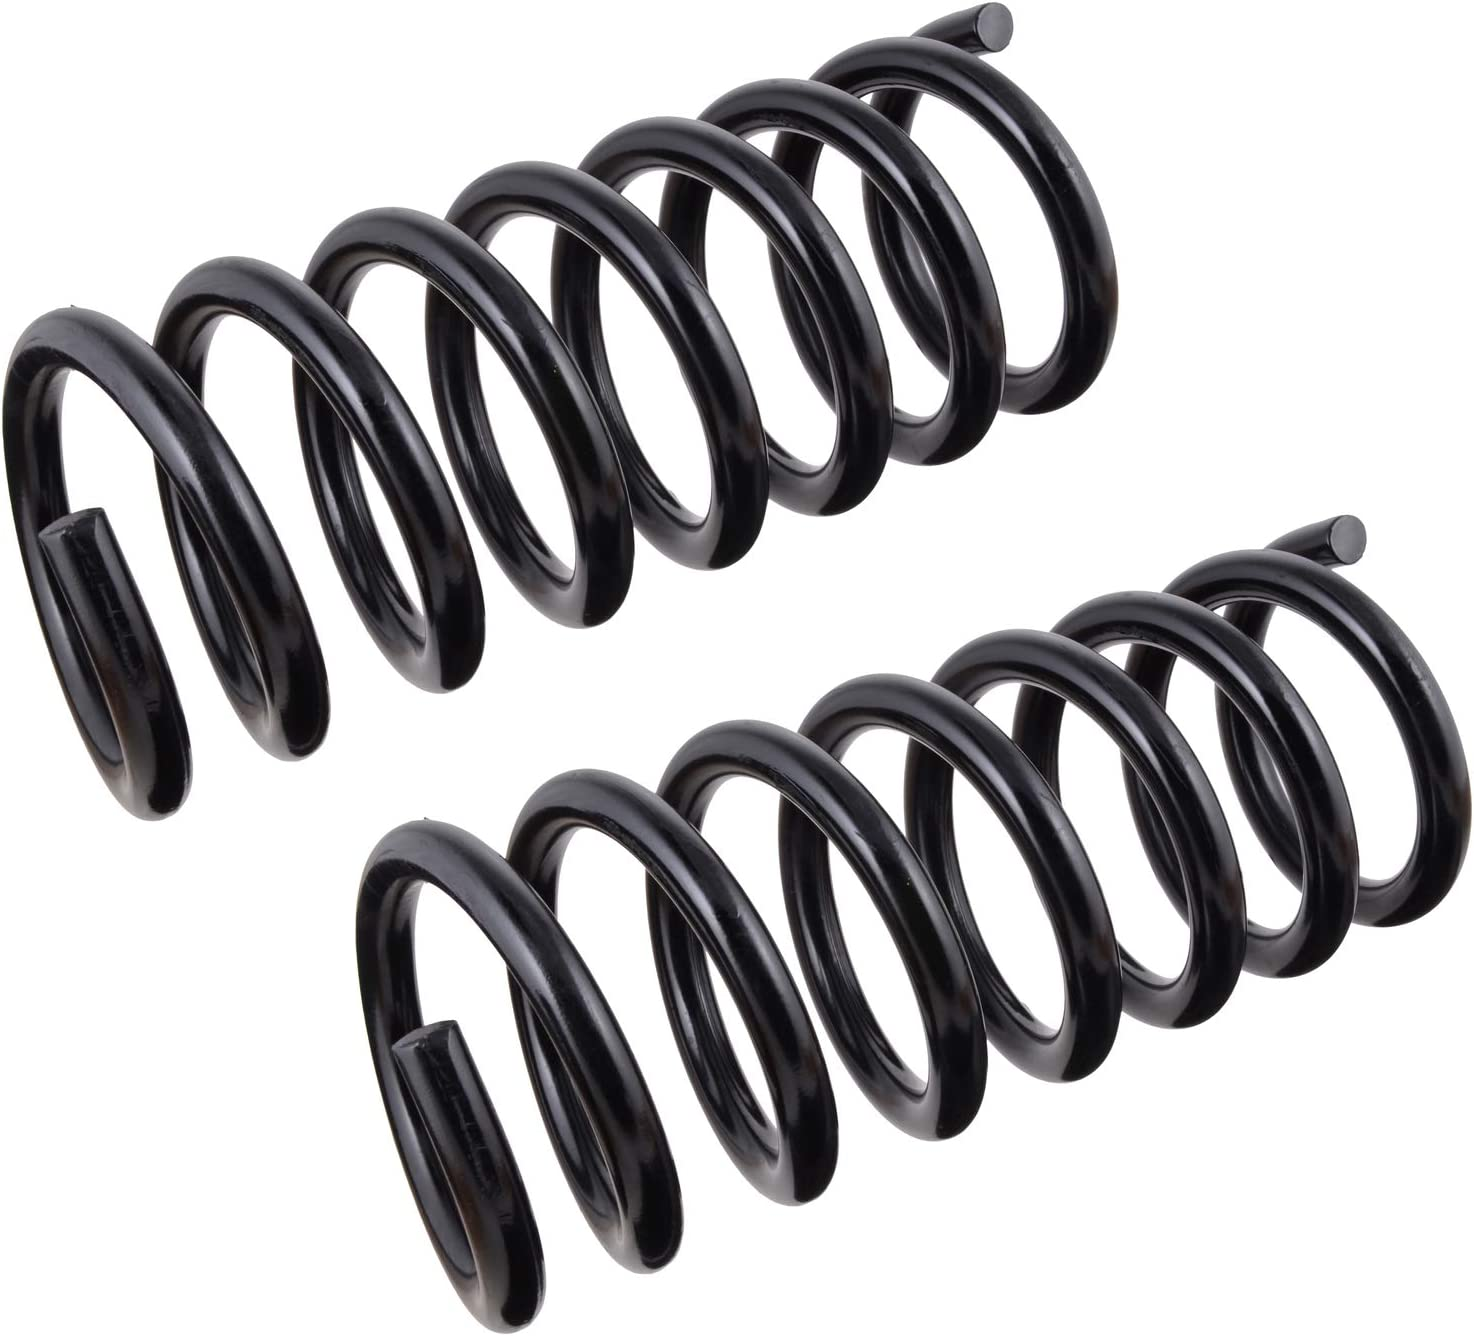 2 Pack TRW Automotive JCS1548T Coil Spring Set